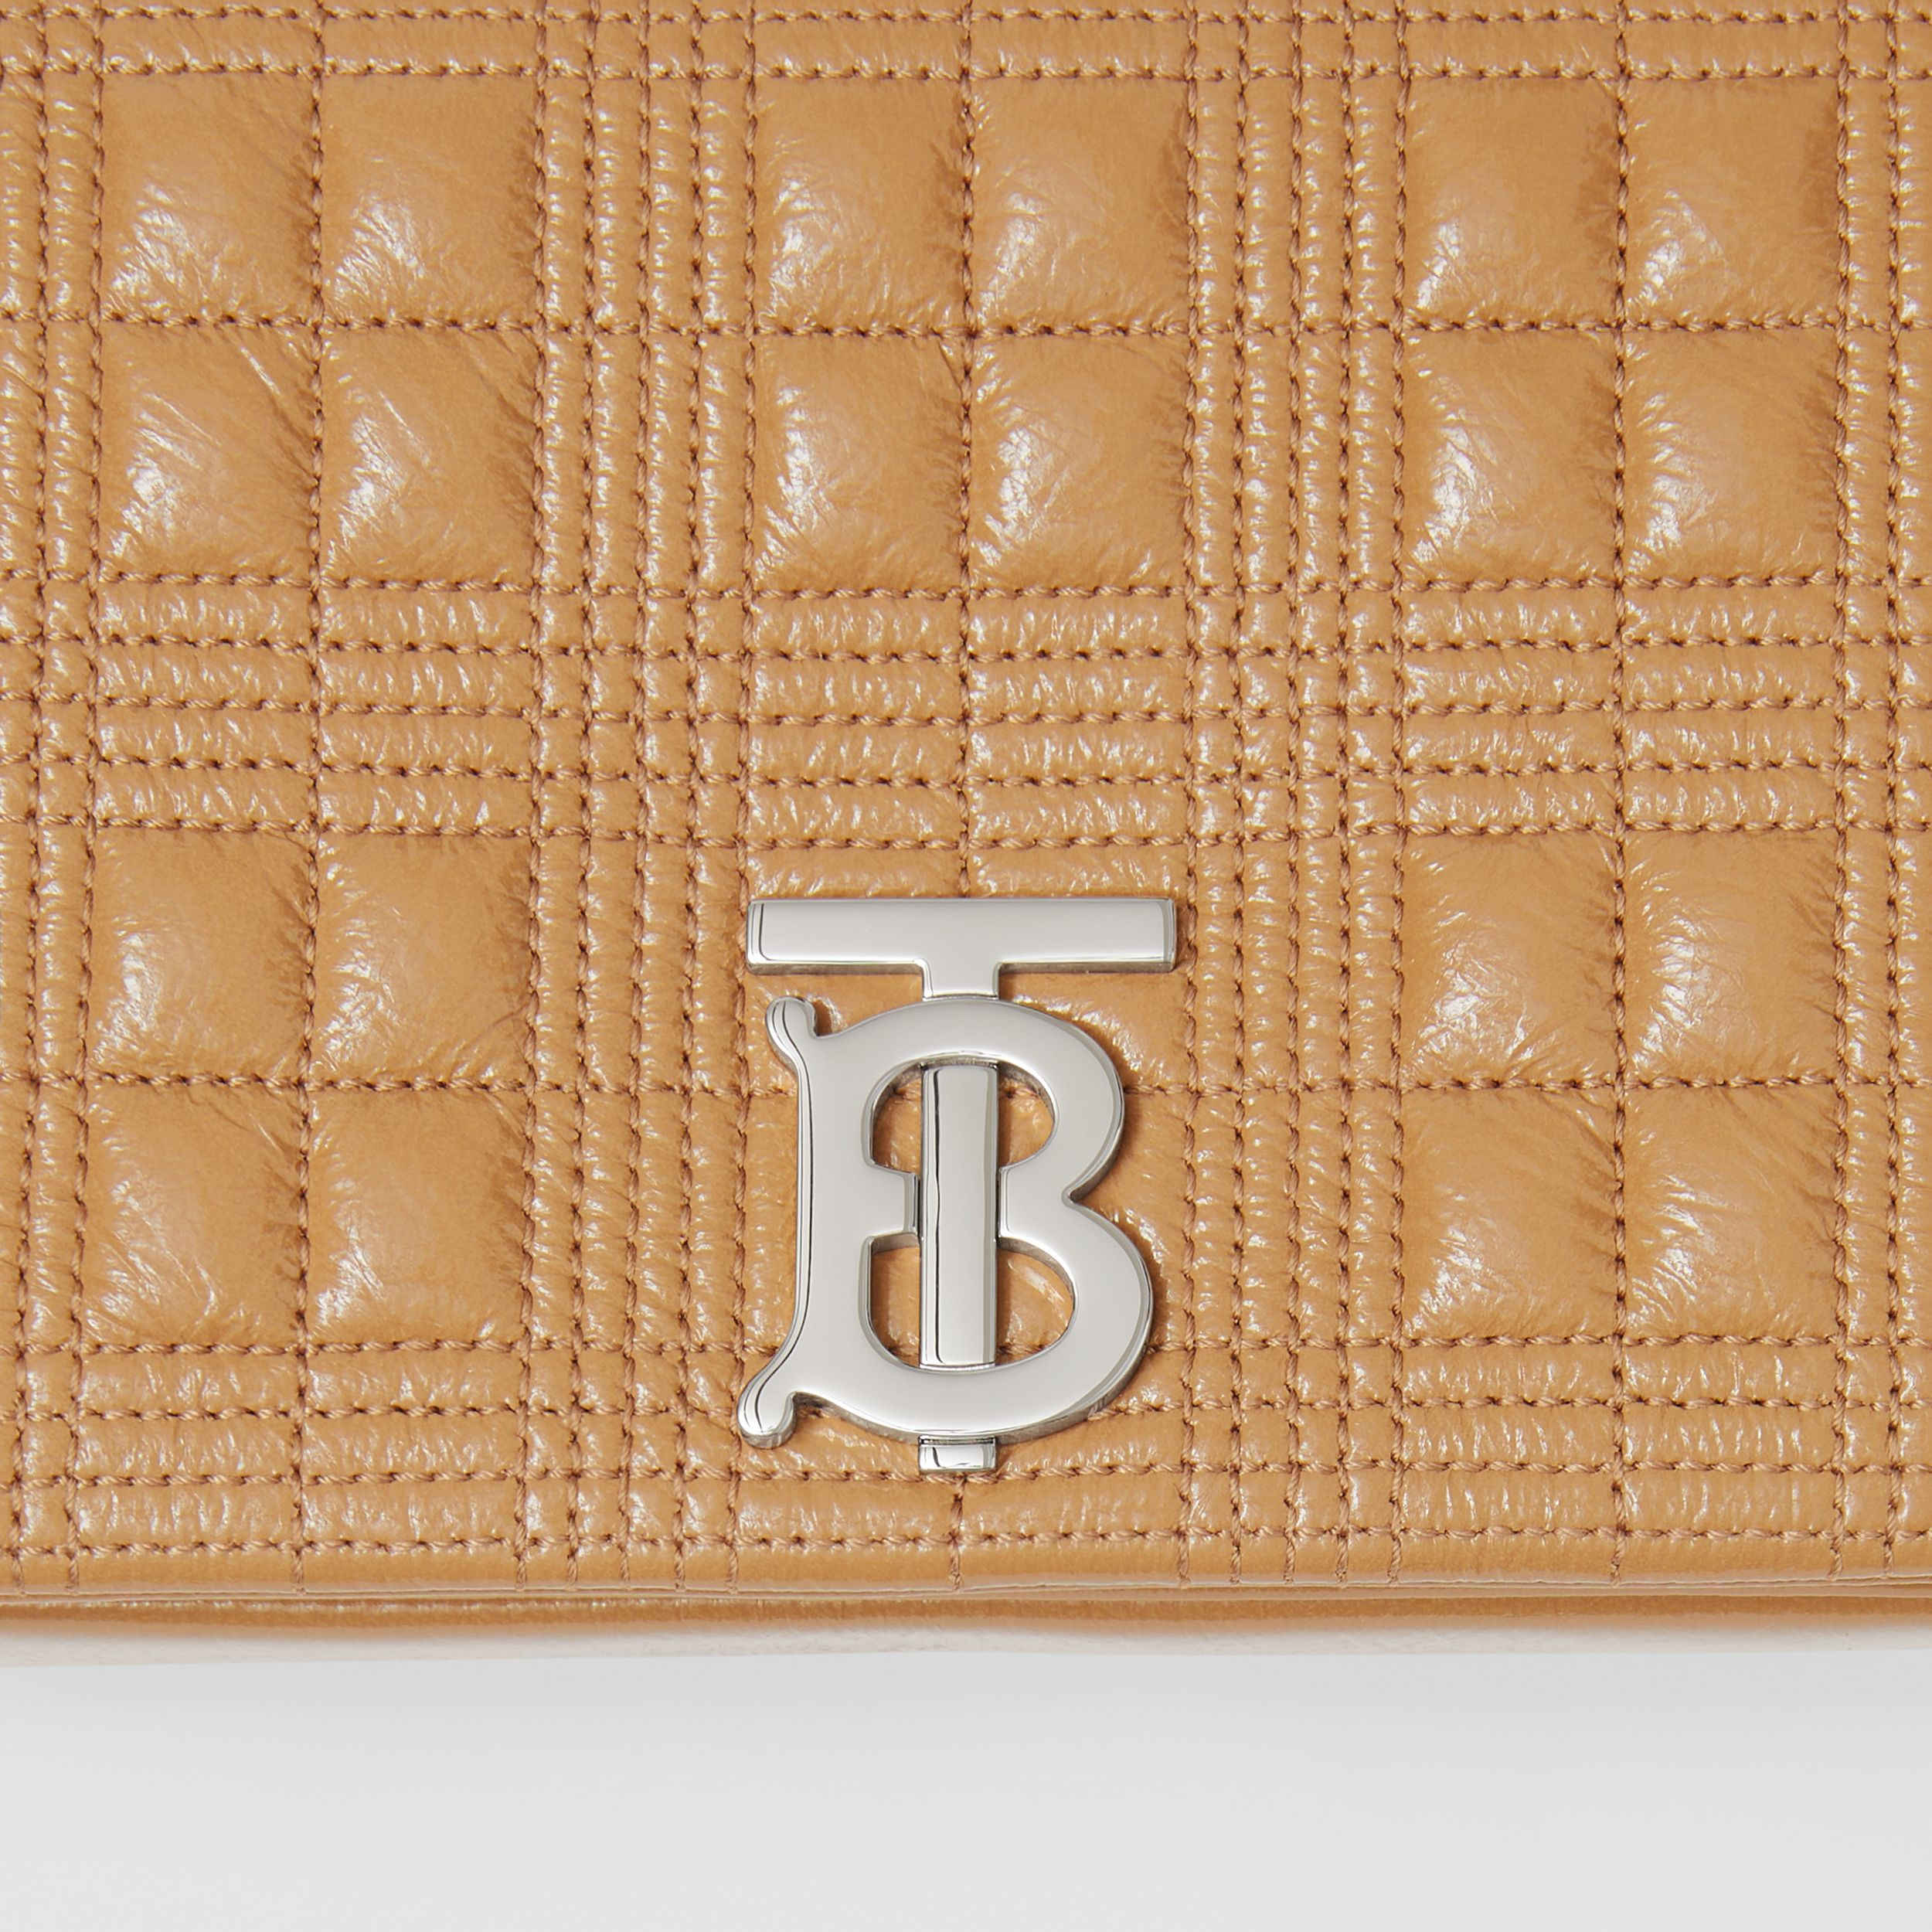 Small Quilted Lambskin Lola Bag in Camel - Women | Burberry Singapore - 2